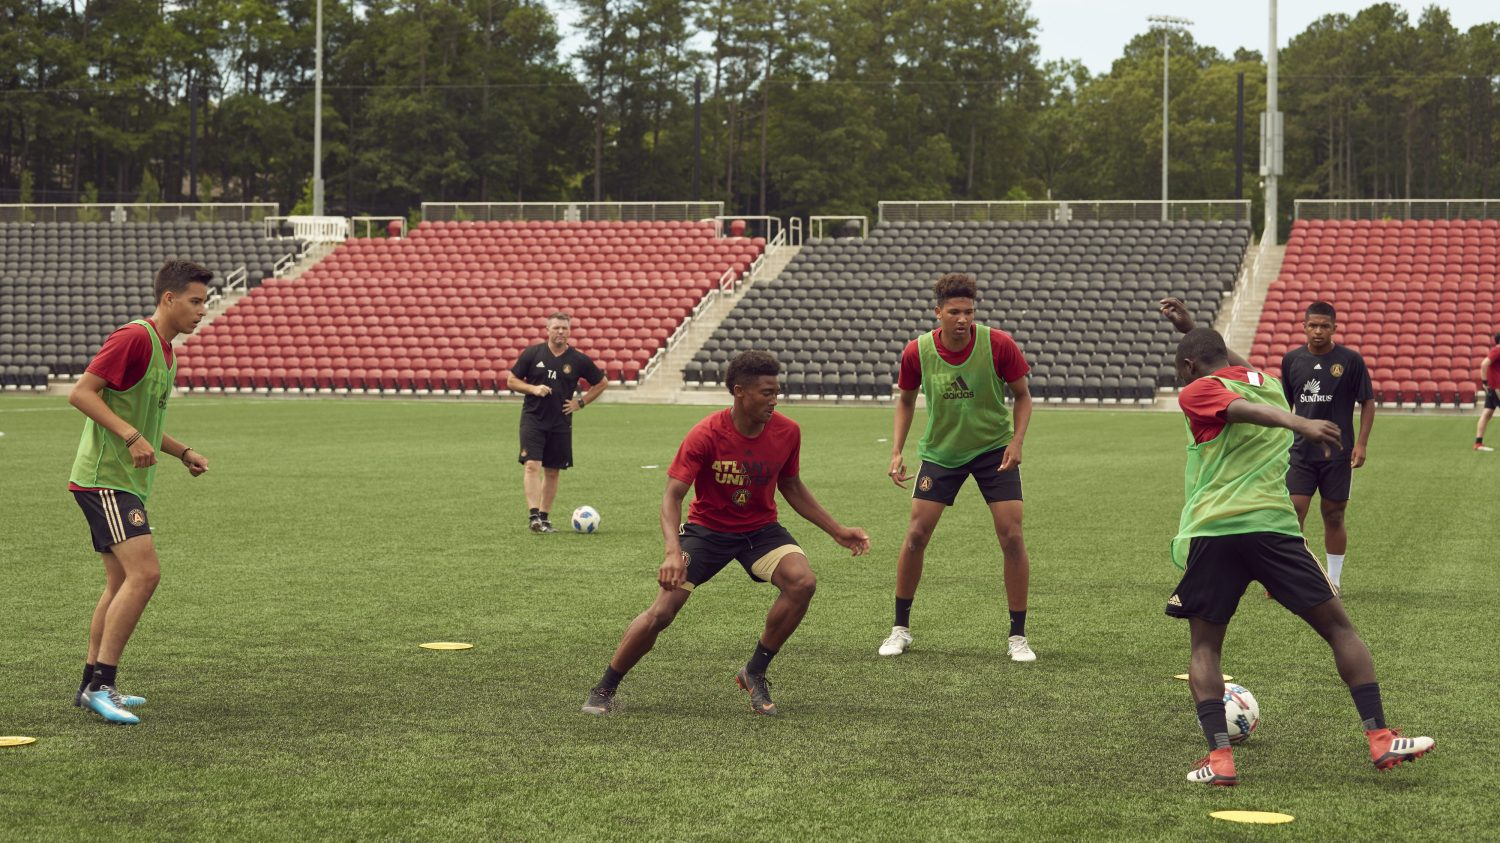 21a80187a7d Behind the scenes of Atlanta United s youth development soccer league